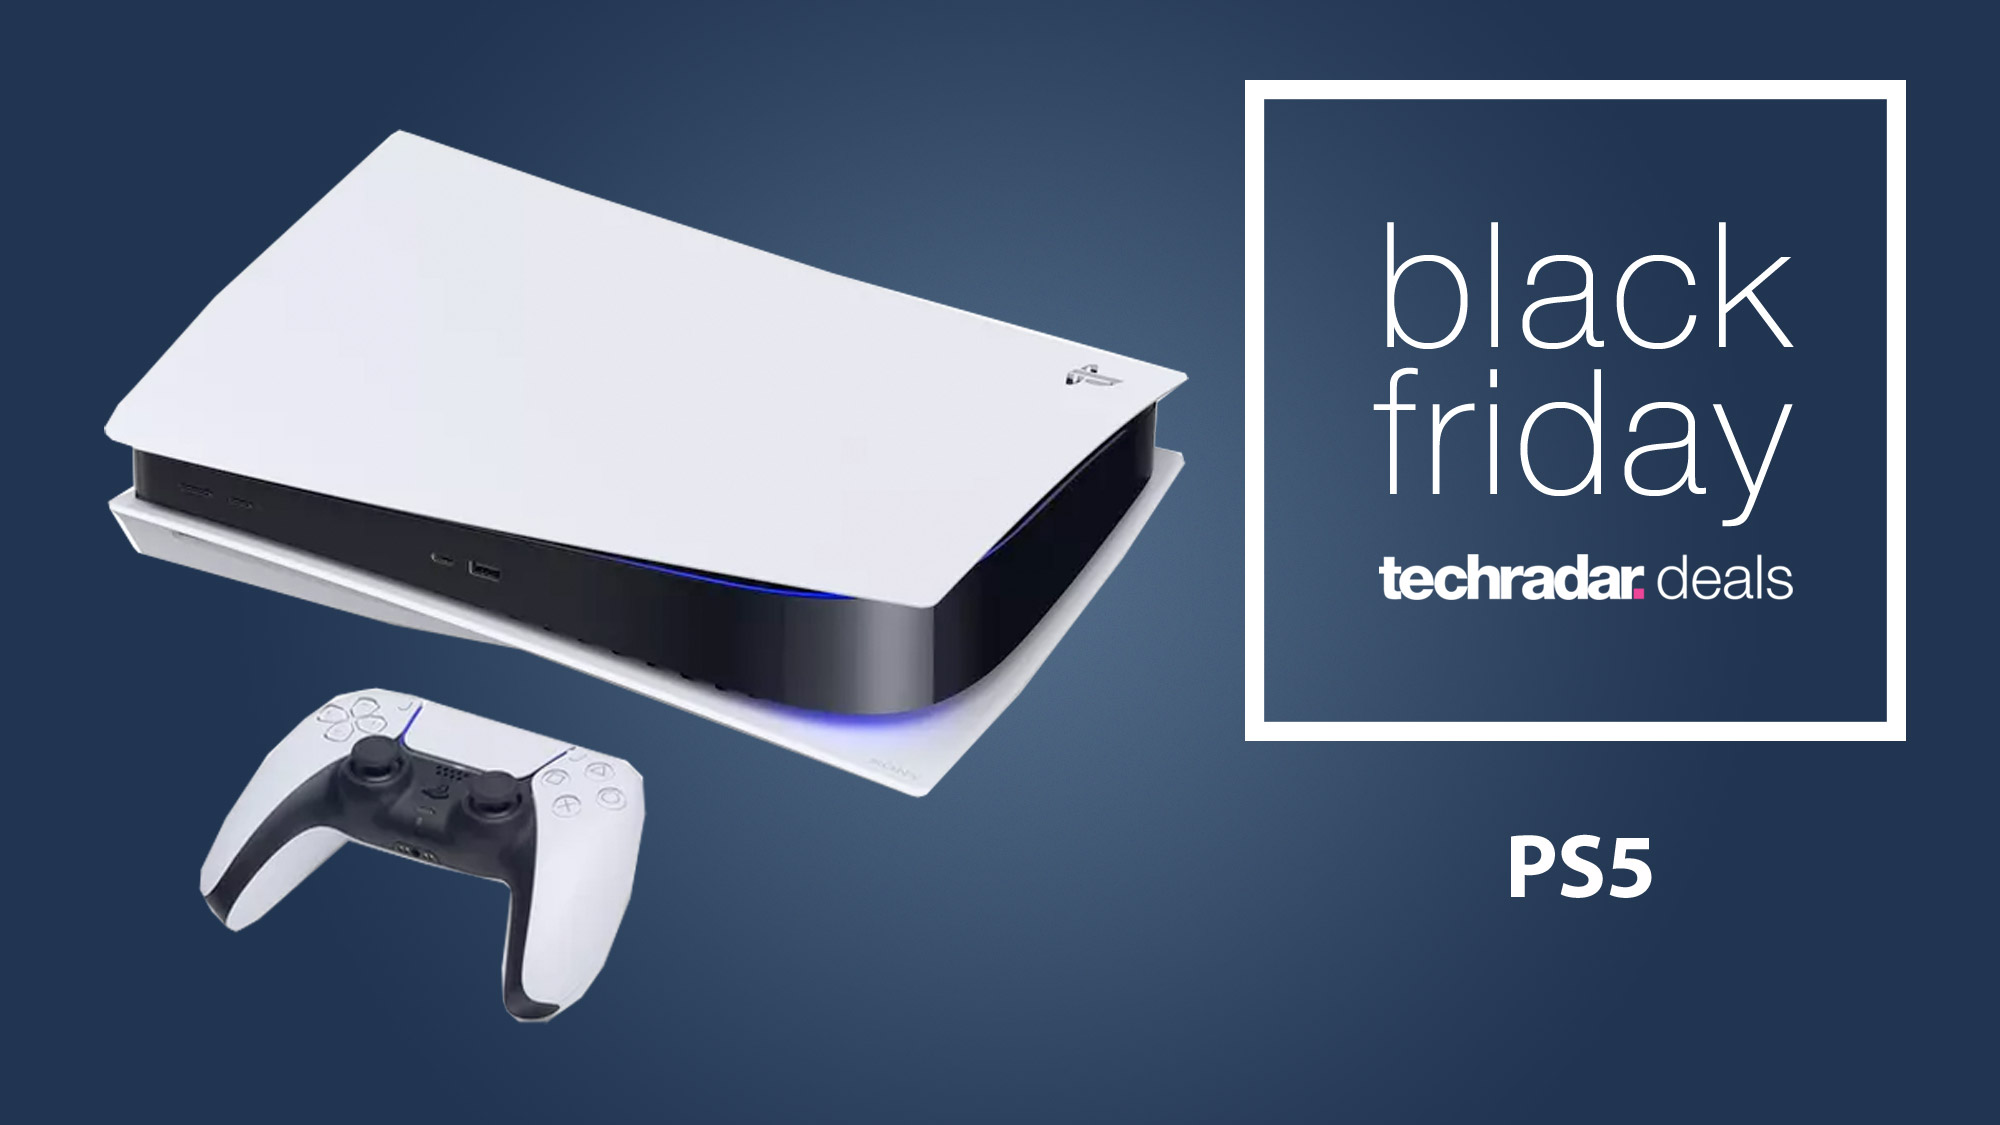 Cyber Monday Ps5 Deals Save On Ps5 Games Ps5 Accessories Tvs And More Techradar